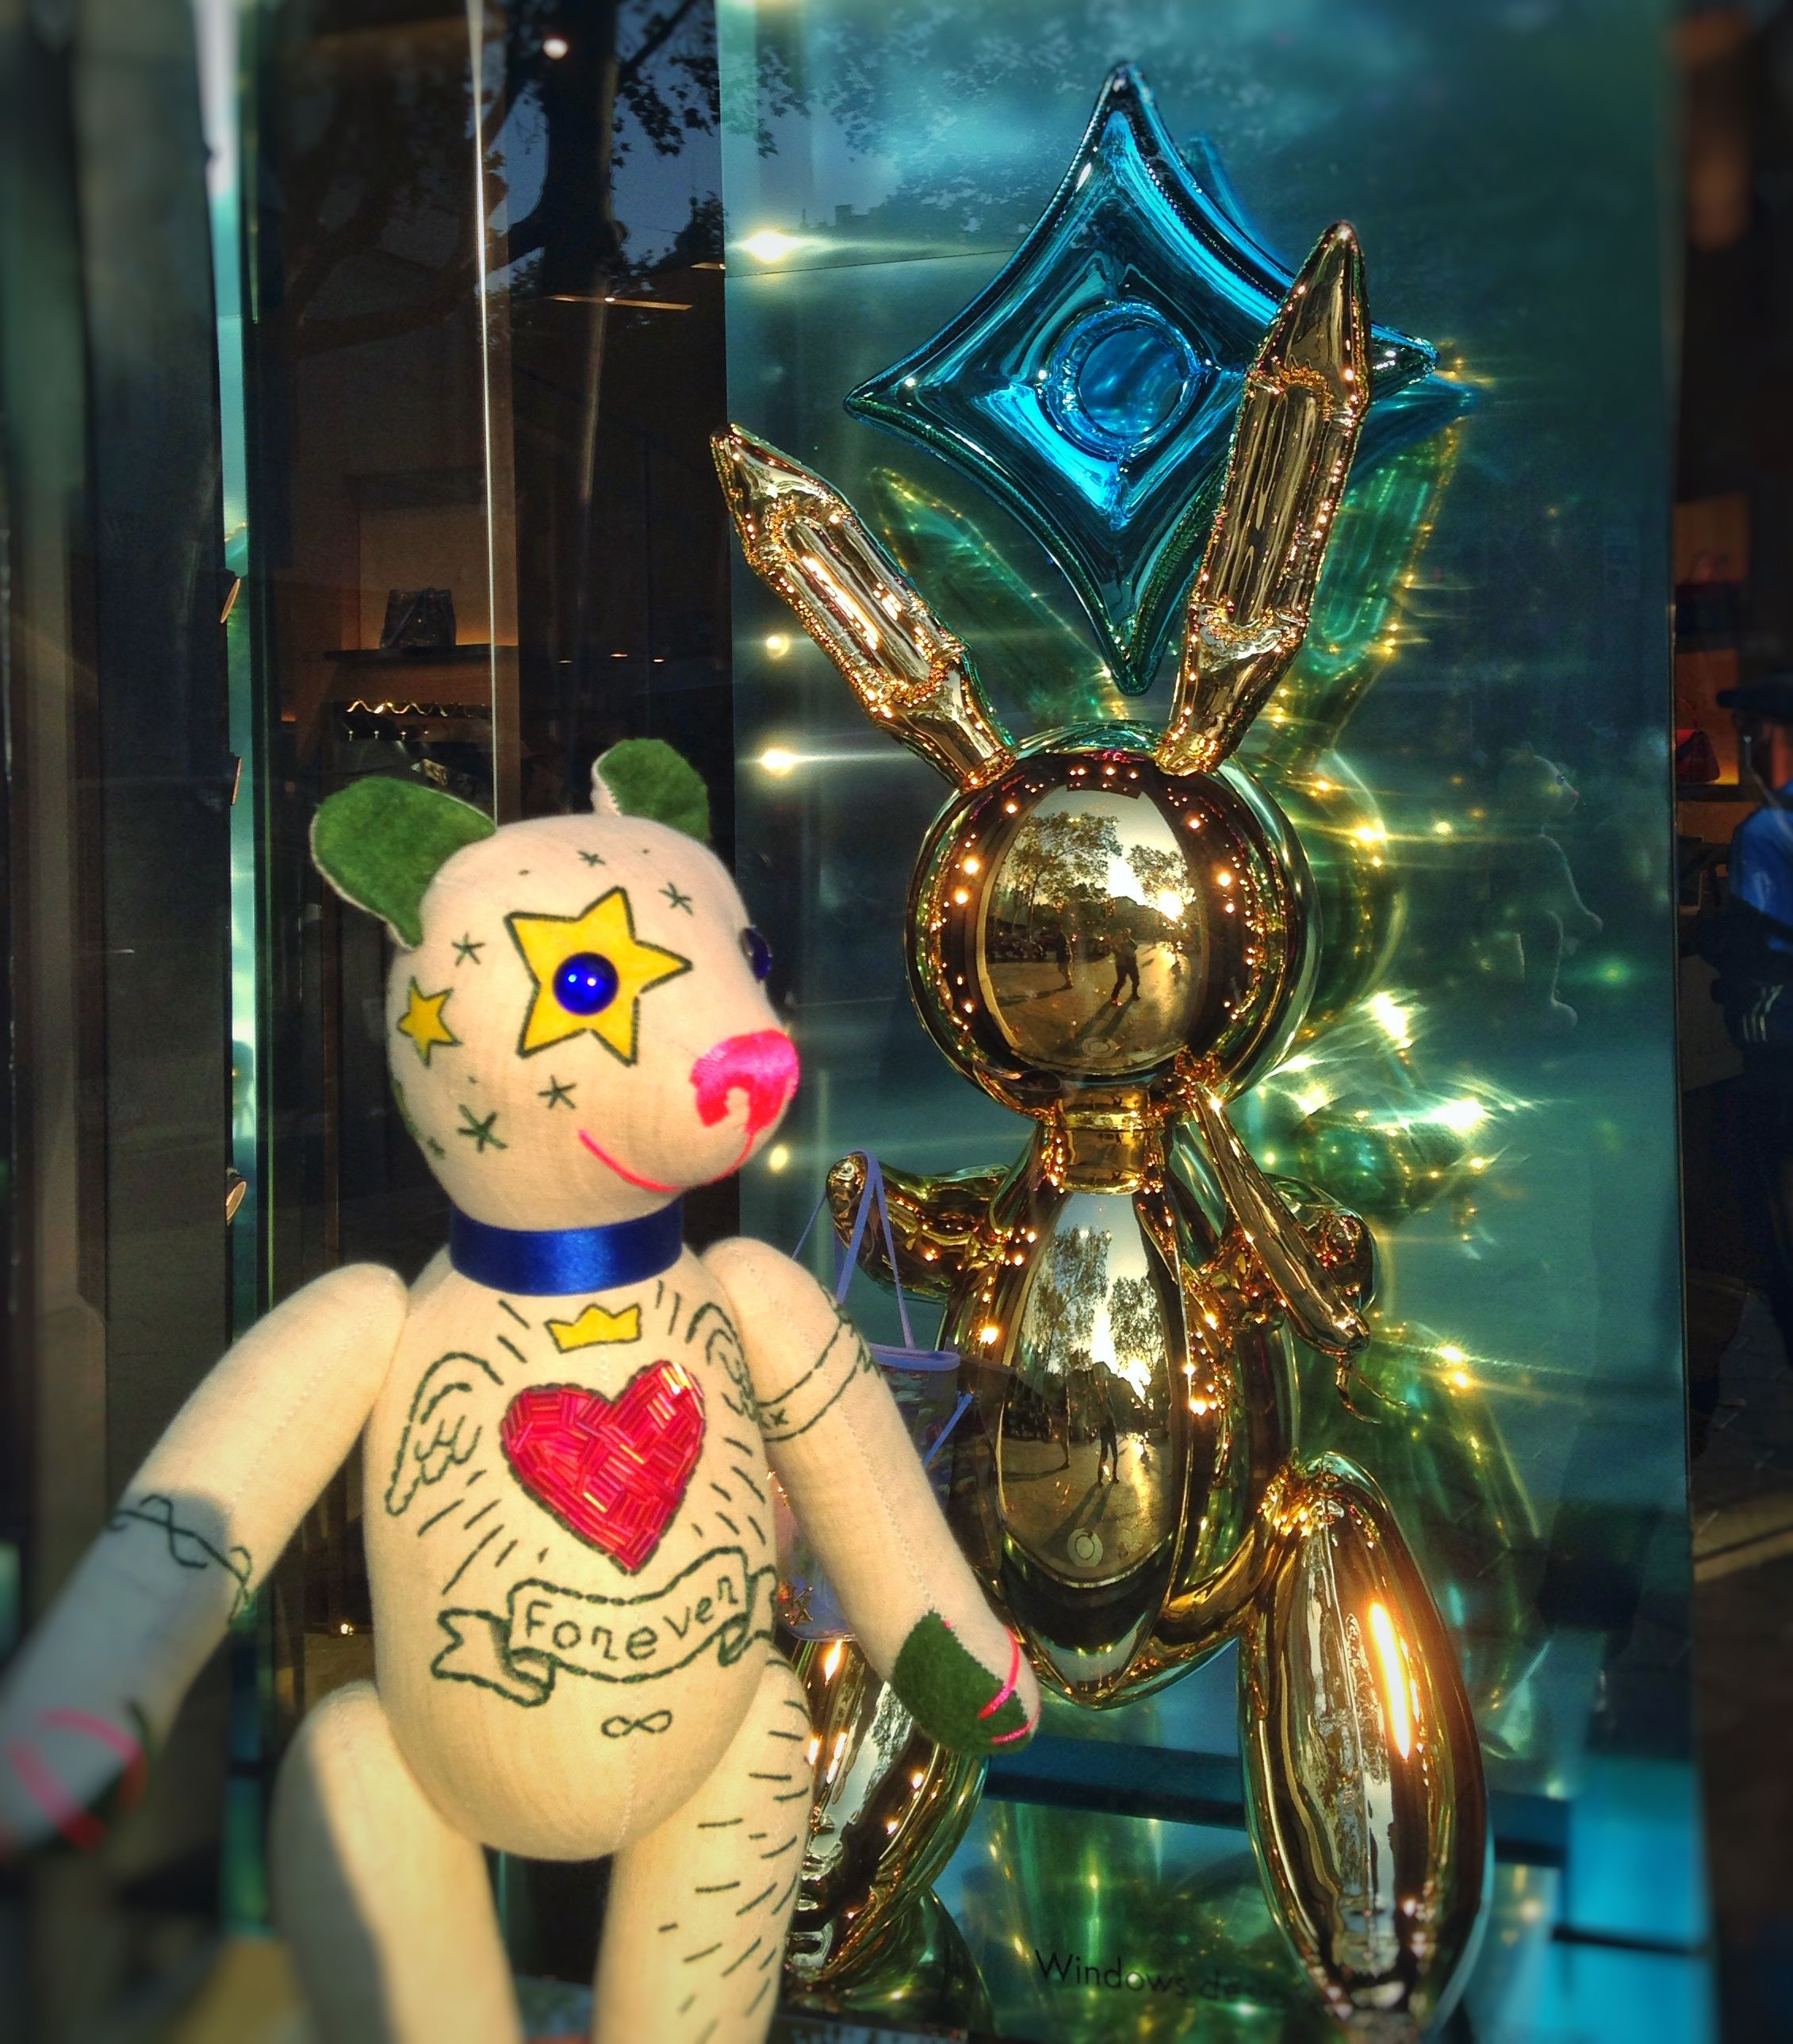 """Good Morning!!! Teddy baby GREEN TATTOO admires Jeff Koons' fun sculptural balloons but his handbags are pure """"Kitsch"""" (vulgar and vulgar) in the Louis Vuitton store ..."""